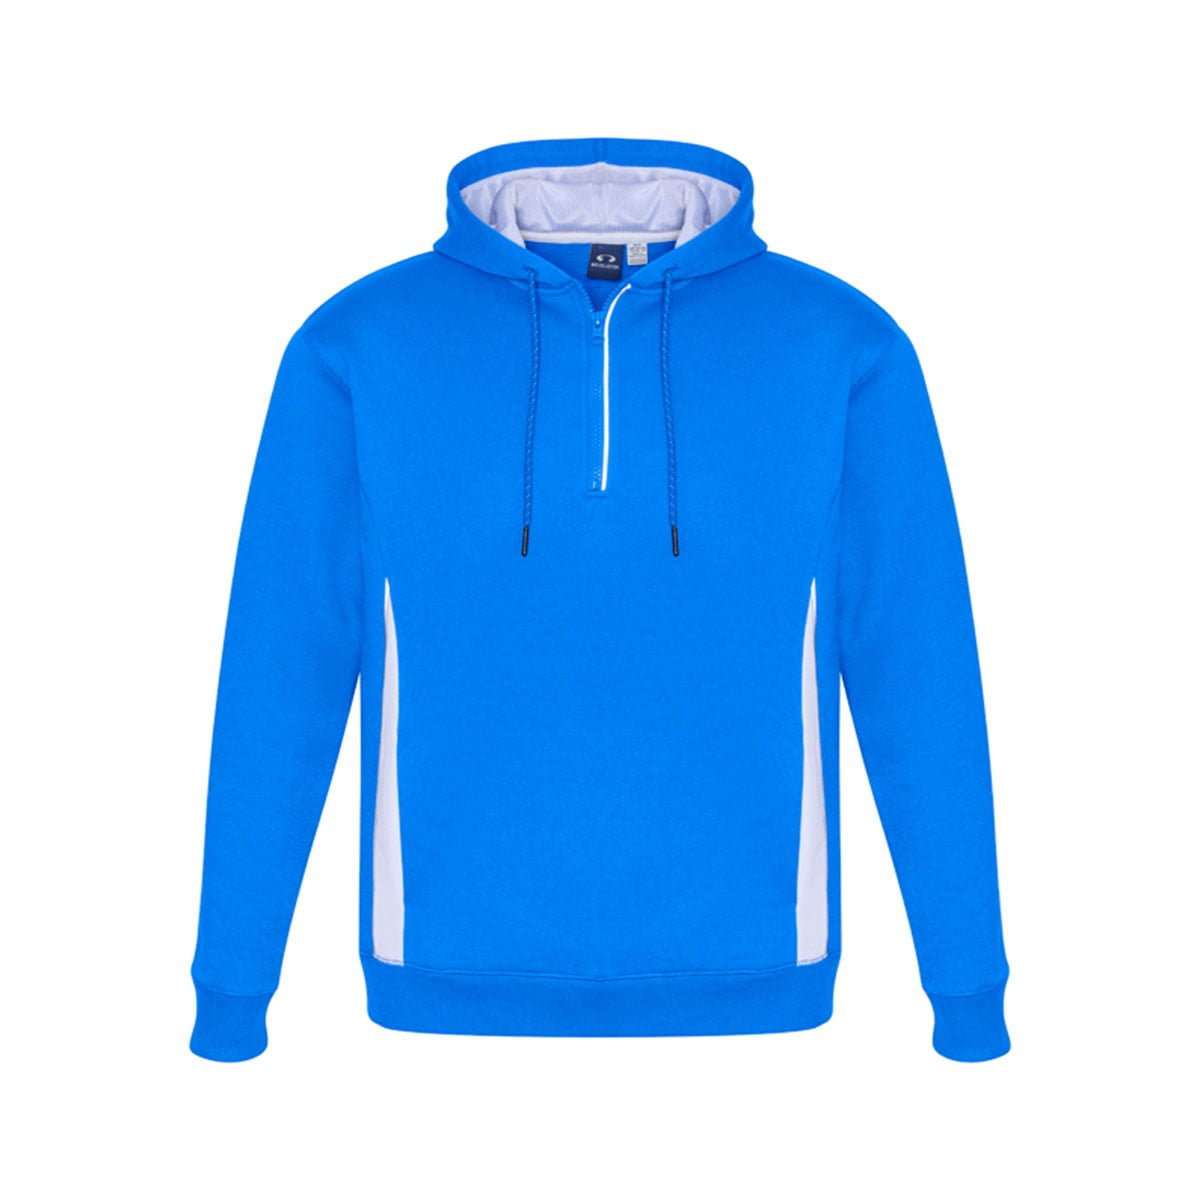 Adults Renegade Hoodie-Royal / White / Silver